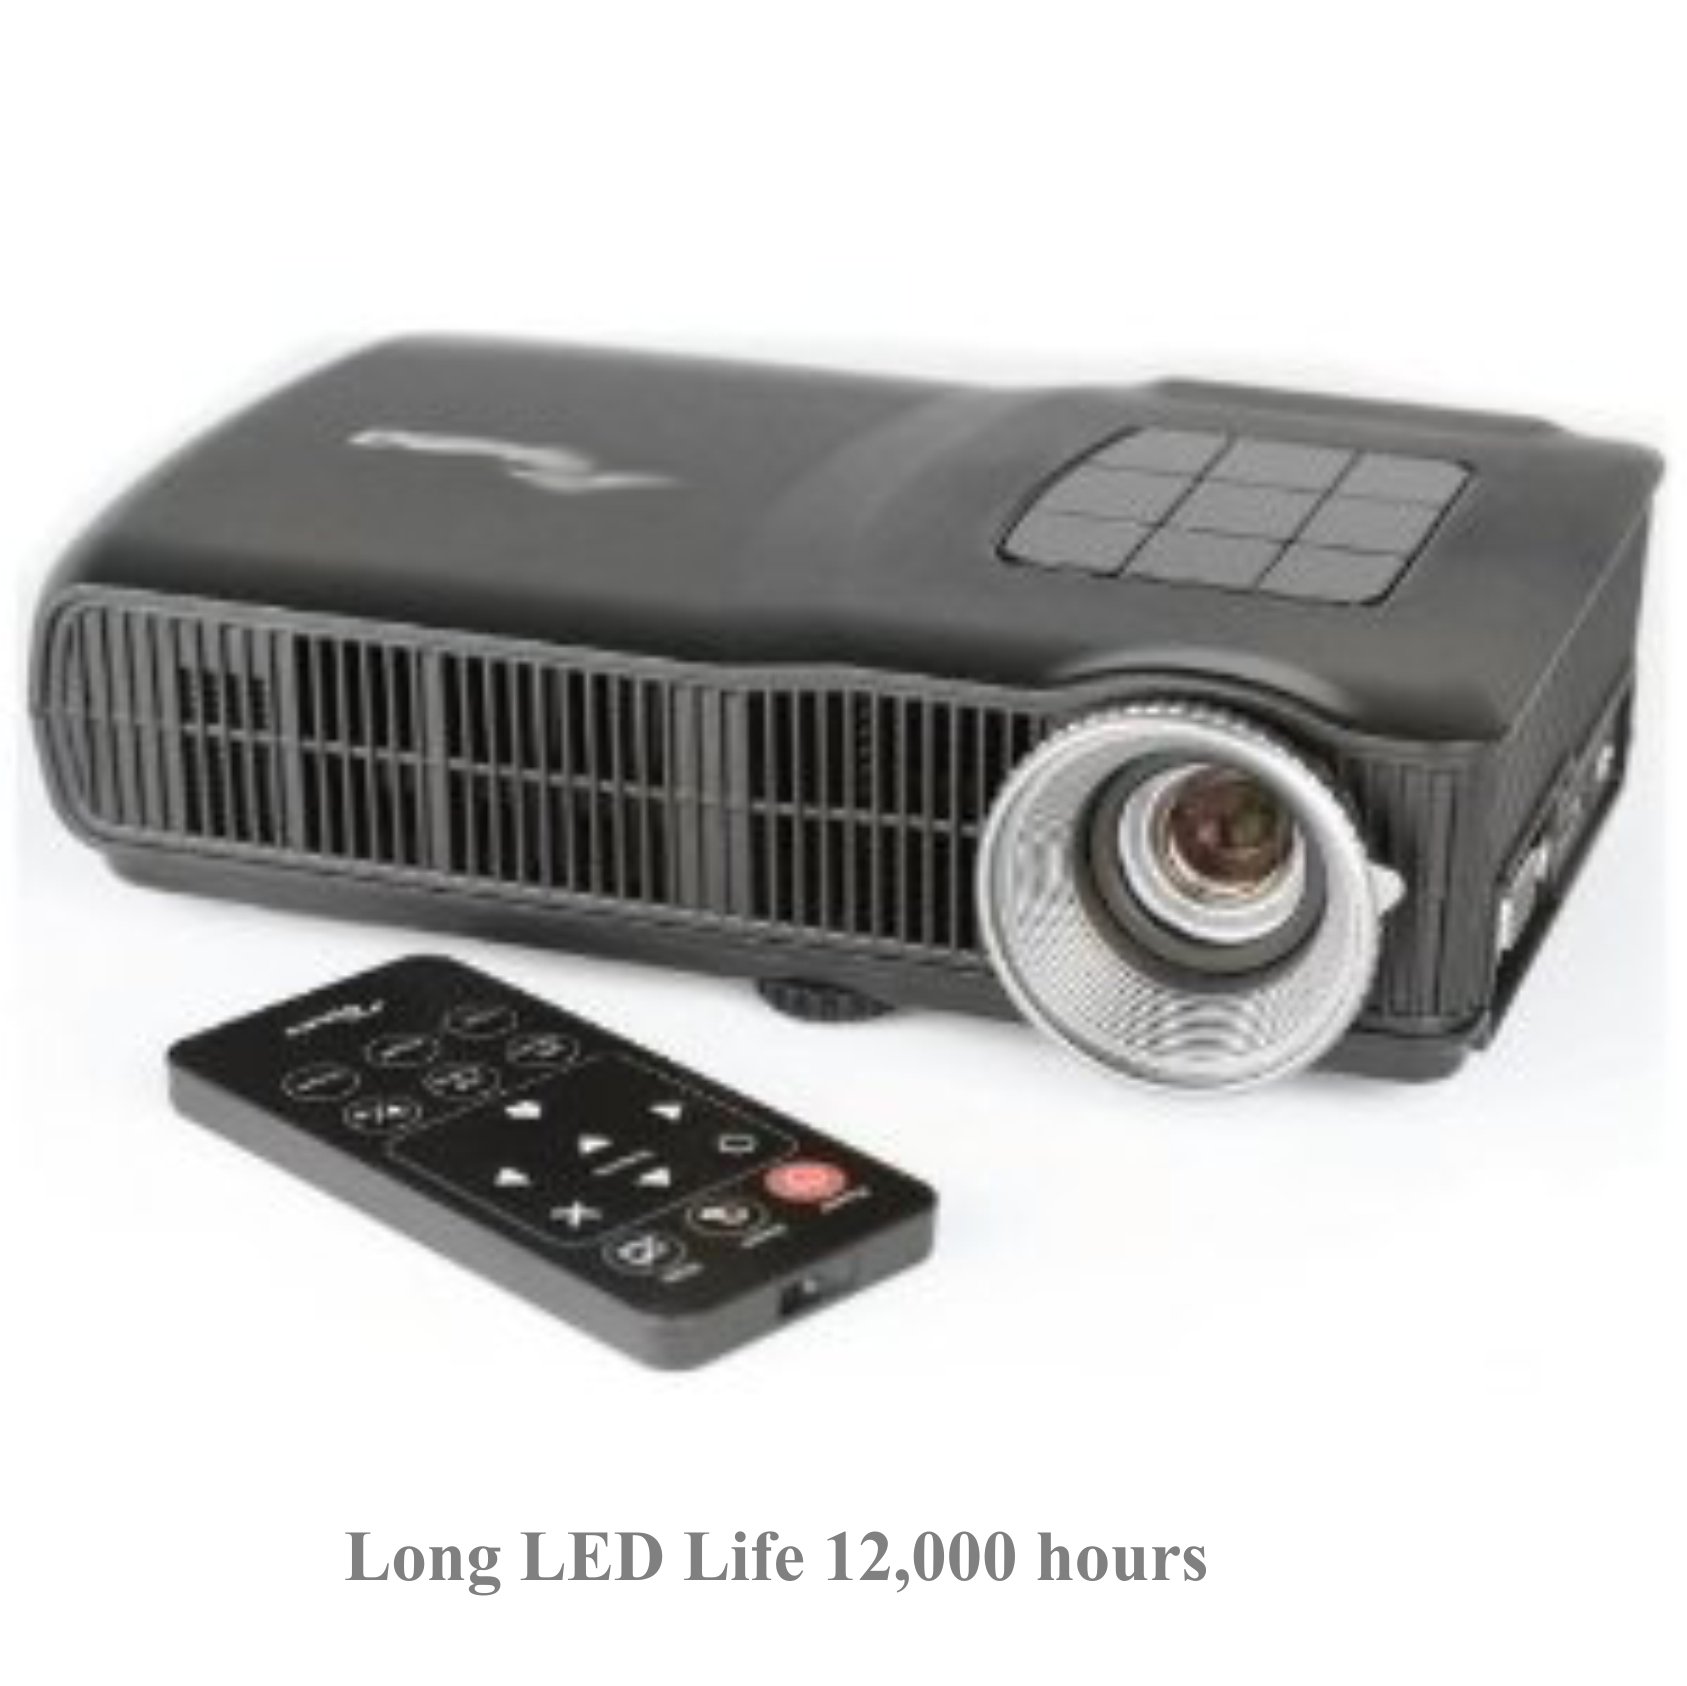 Indoor and outdoor DLP Video Projector for Holiday projections